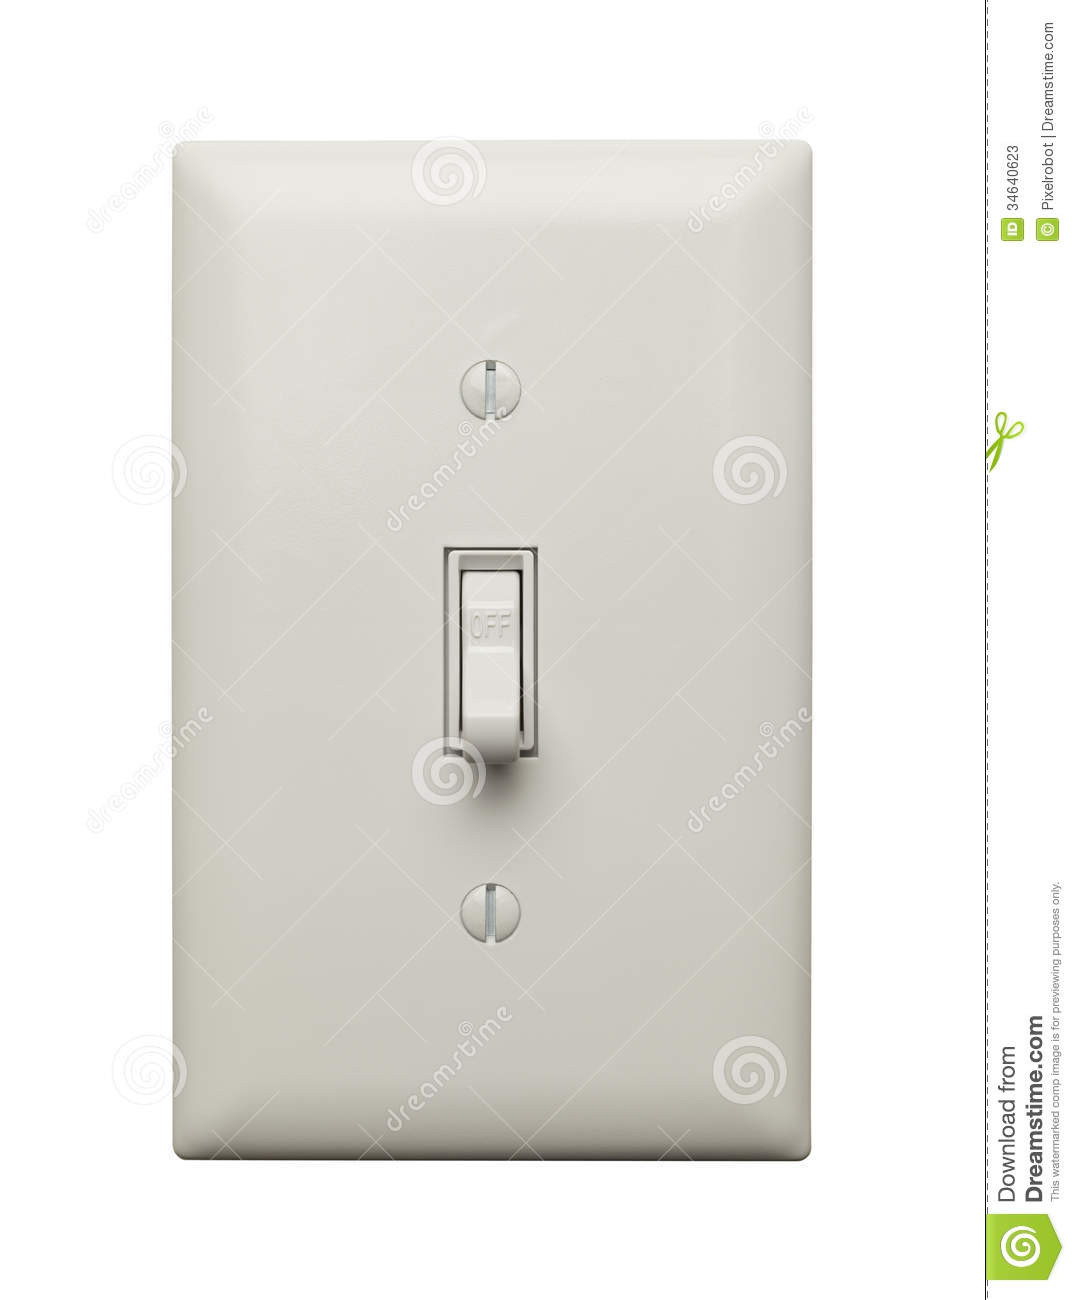 Light Switch Off Clipart Off Switch Stock Photos Image 34640623